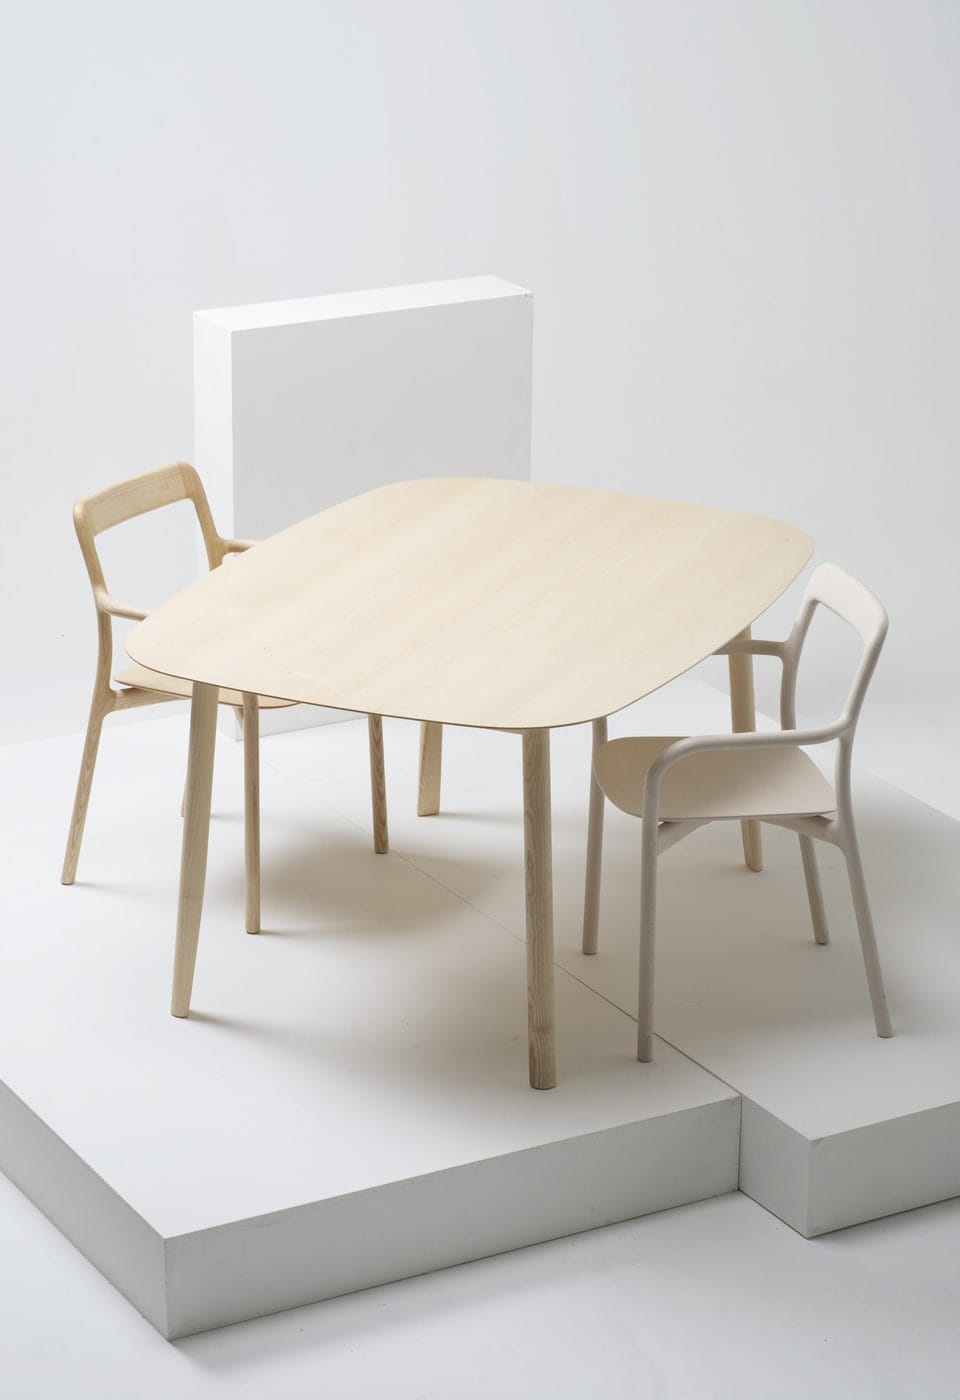 Mc2 Branca Table By Sam Hecht Amp Kim Colin For Mattiazzi